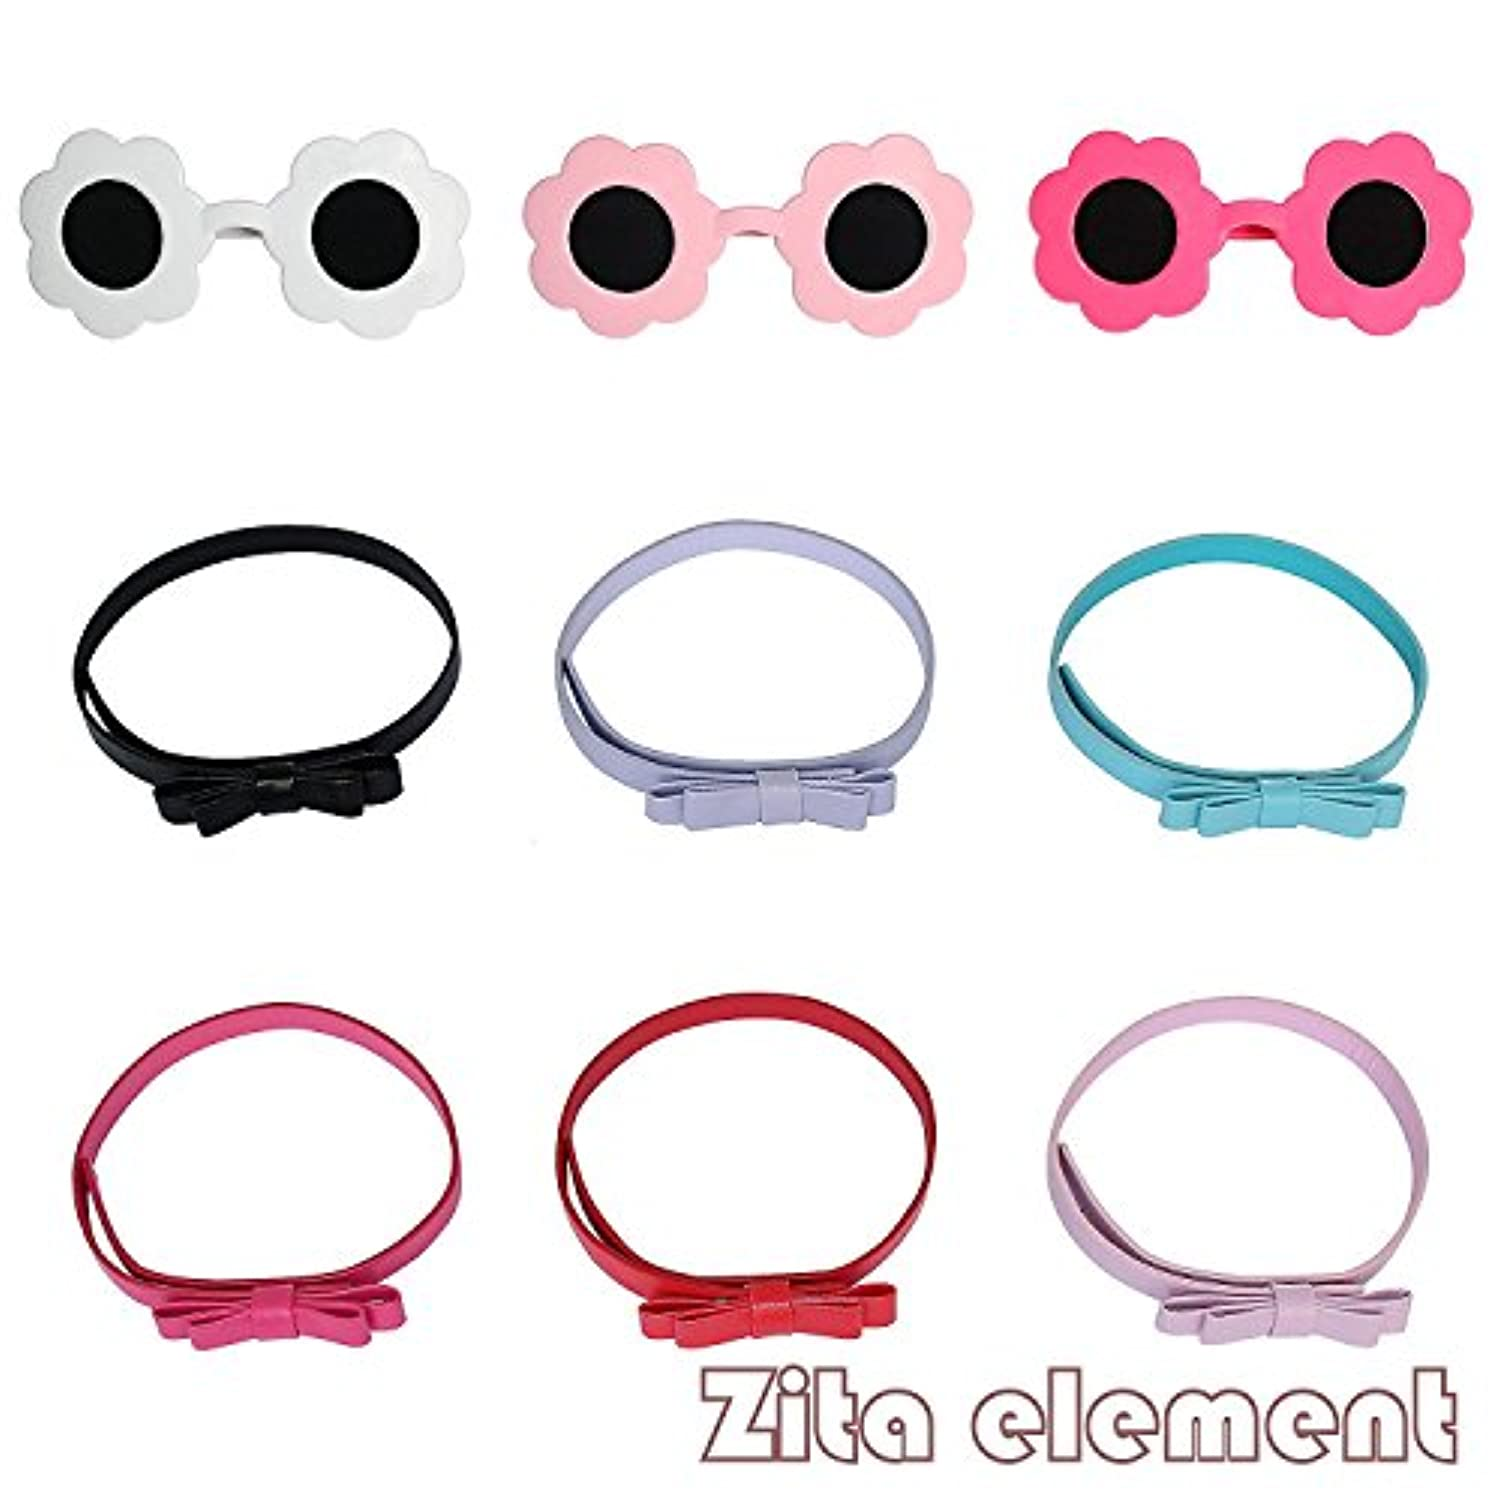 6PCS Doll Accessory- 3xSUNGLASS + 3xBELTS-ramdon style fit for 18 inch American Girl Doll